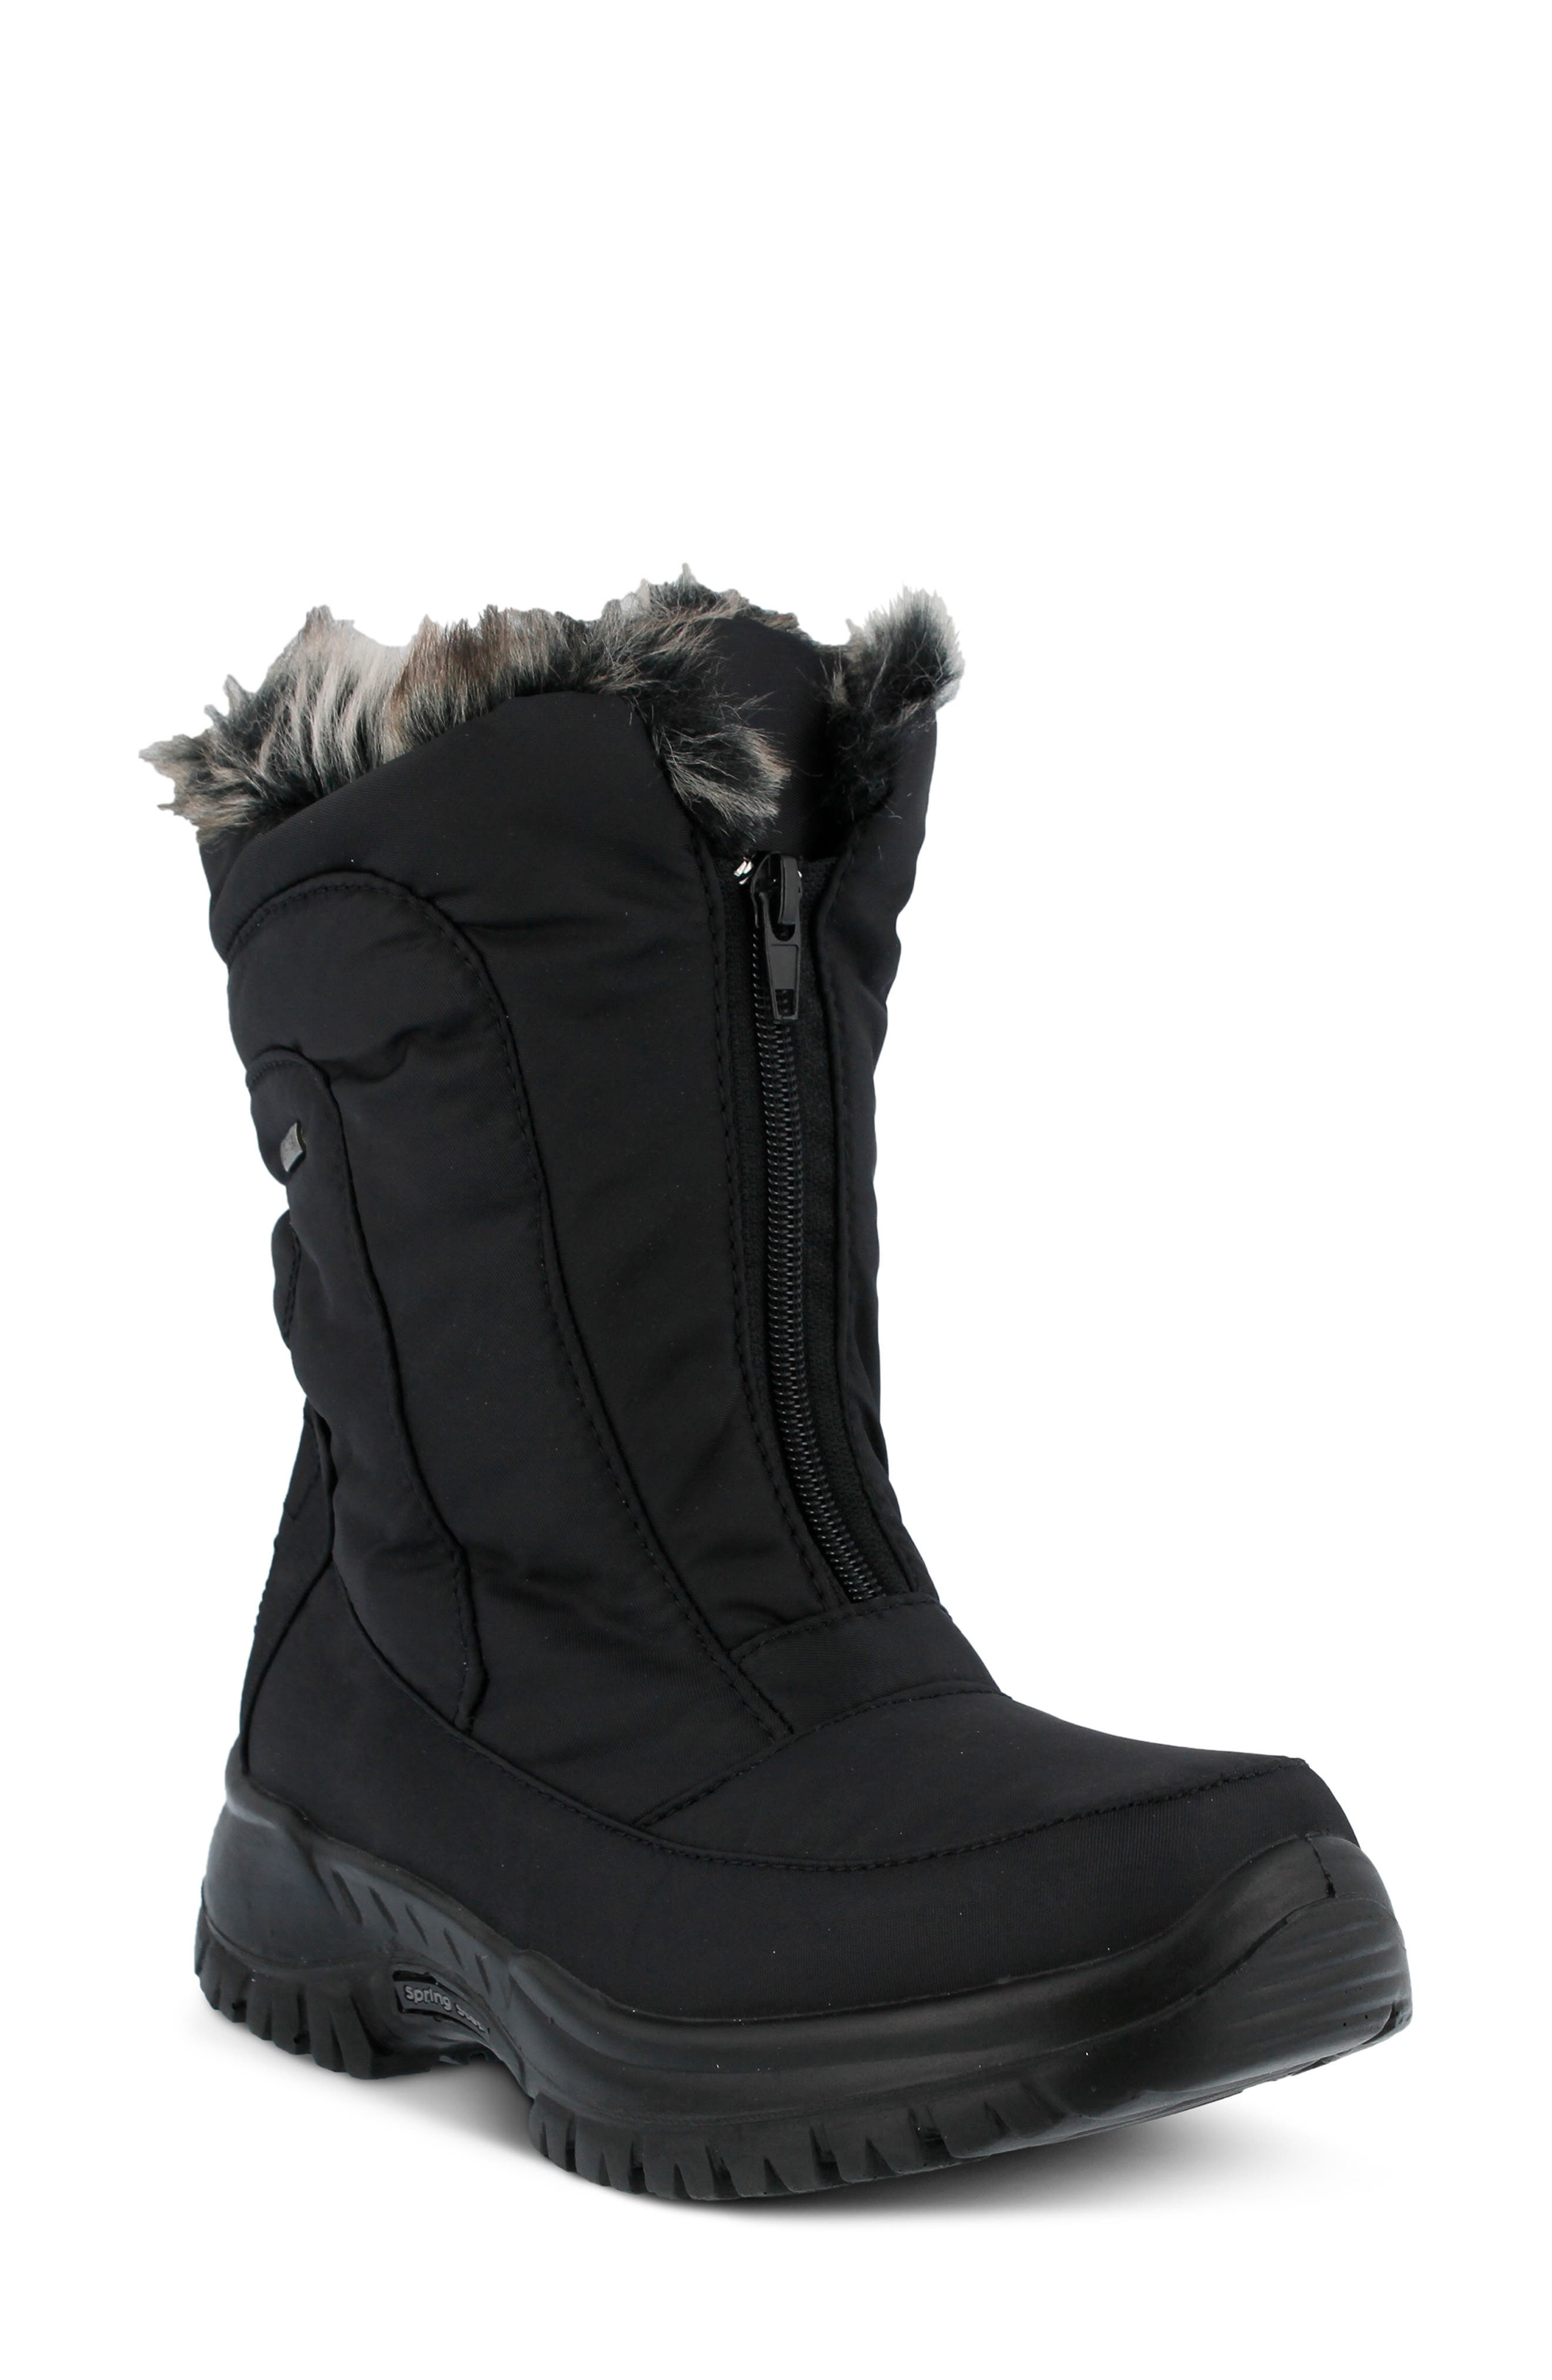 SPRING STEP,                             Zigzag Waterproof Faux Fur Bootie,                             Main thumbnail 1, color,                             BLACK FABRIC